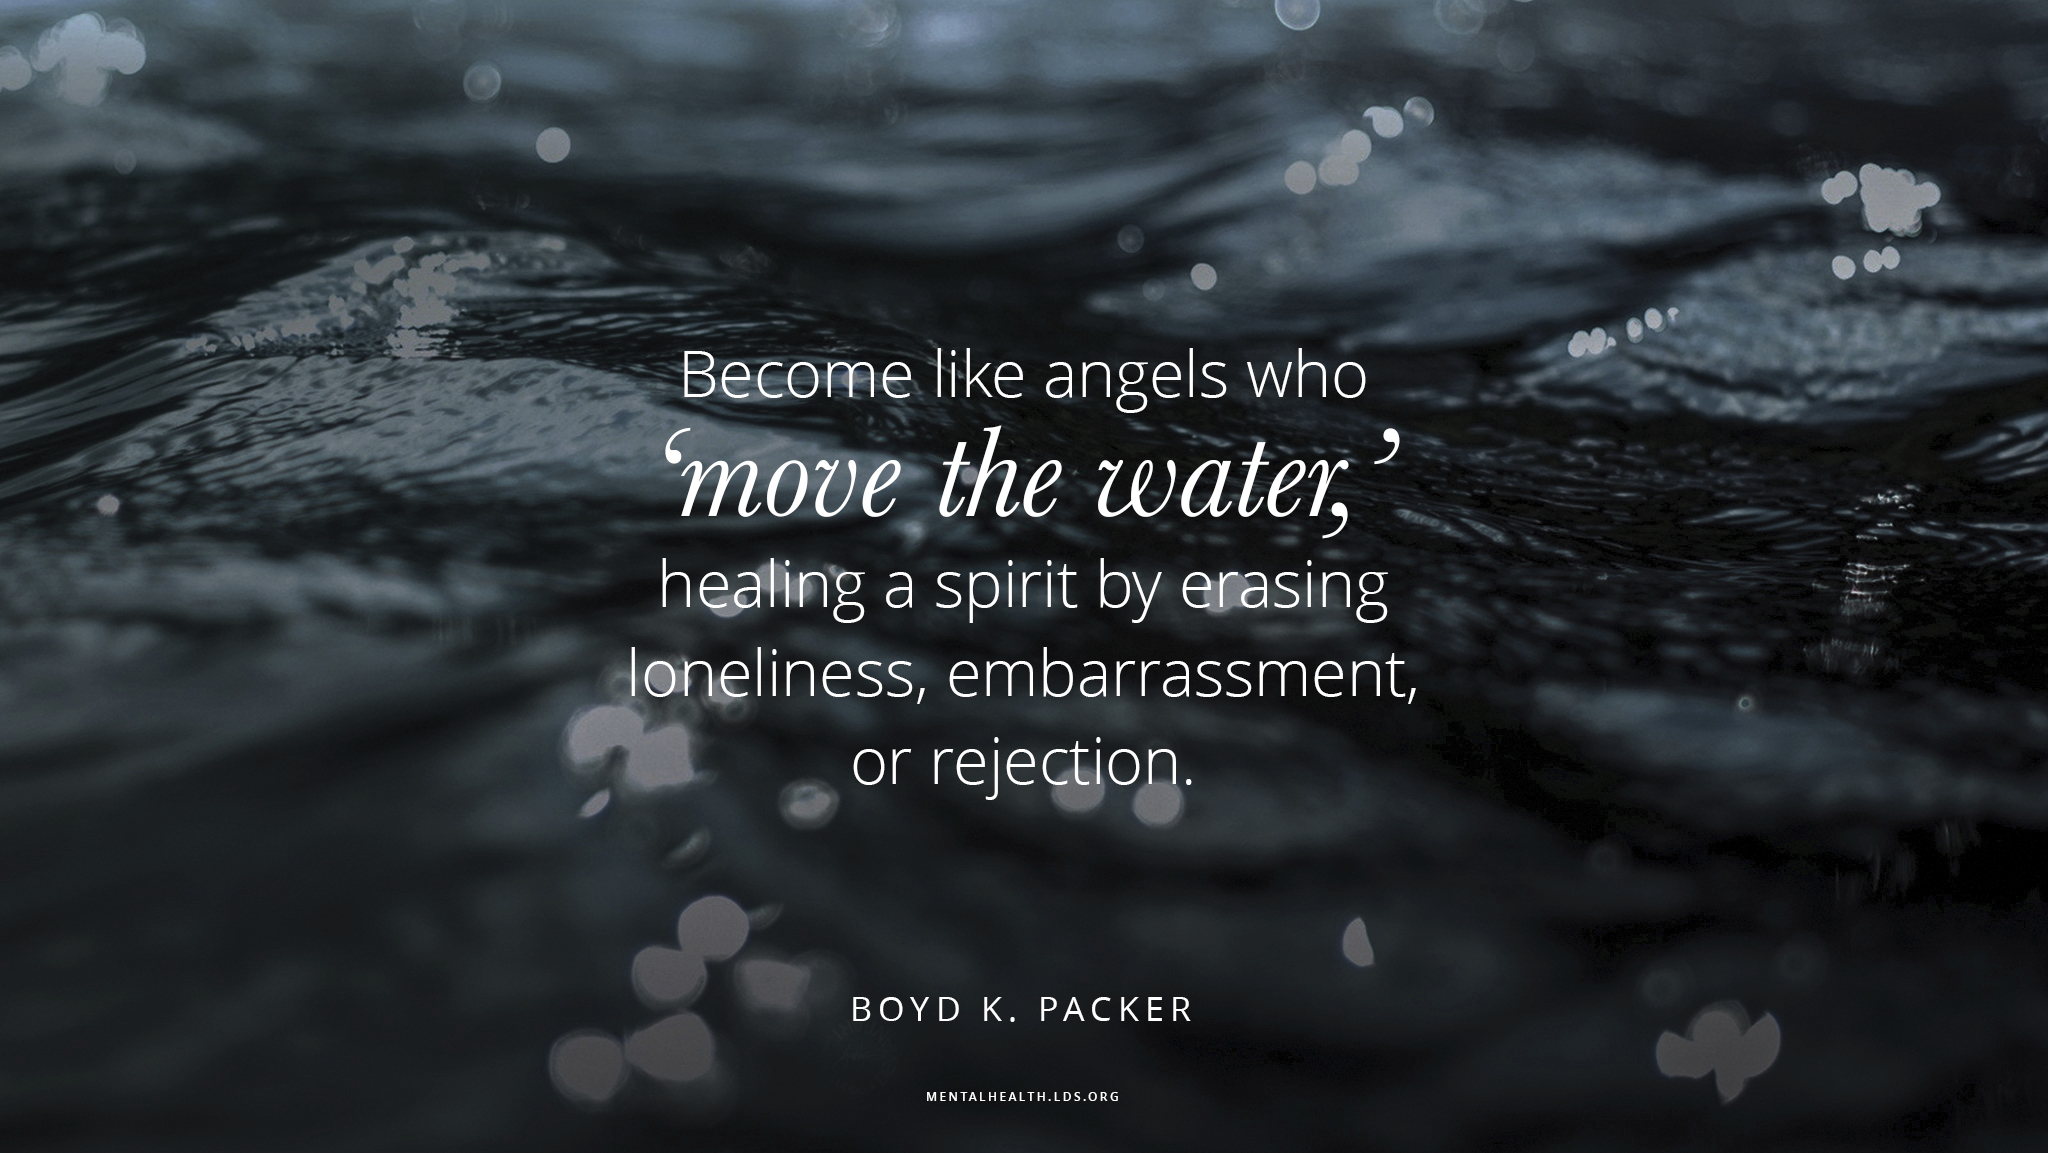 """""""Become like angels who 'move the water,' healing a spirit by erasing loneliness, embarrassment, or rejection.""""—Elder Boyd K. Packer, """"The Moving of the Water"""""""